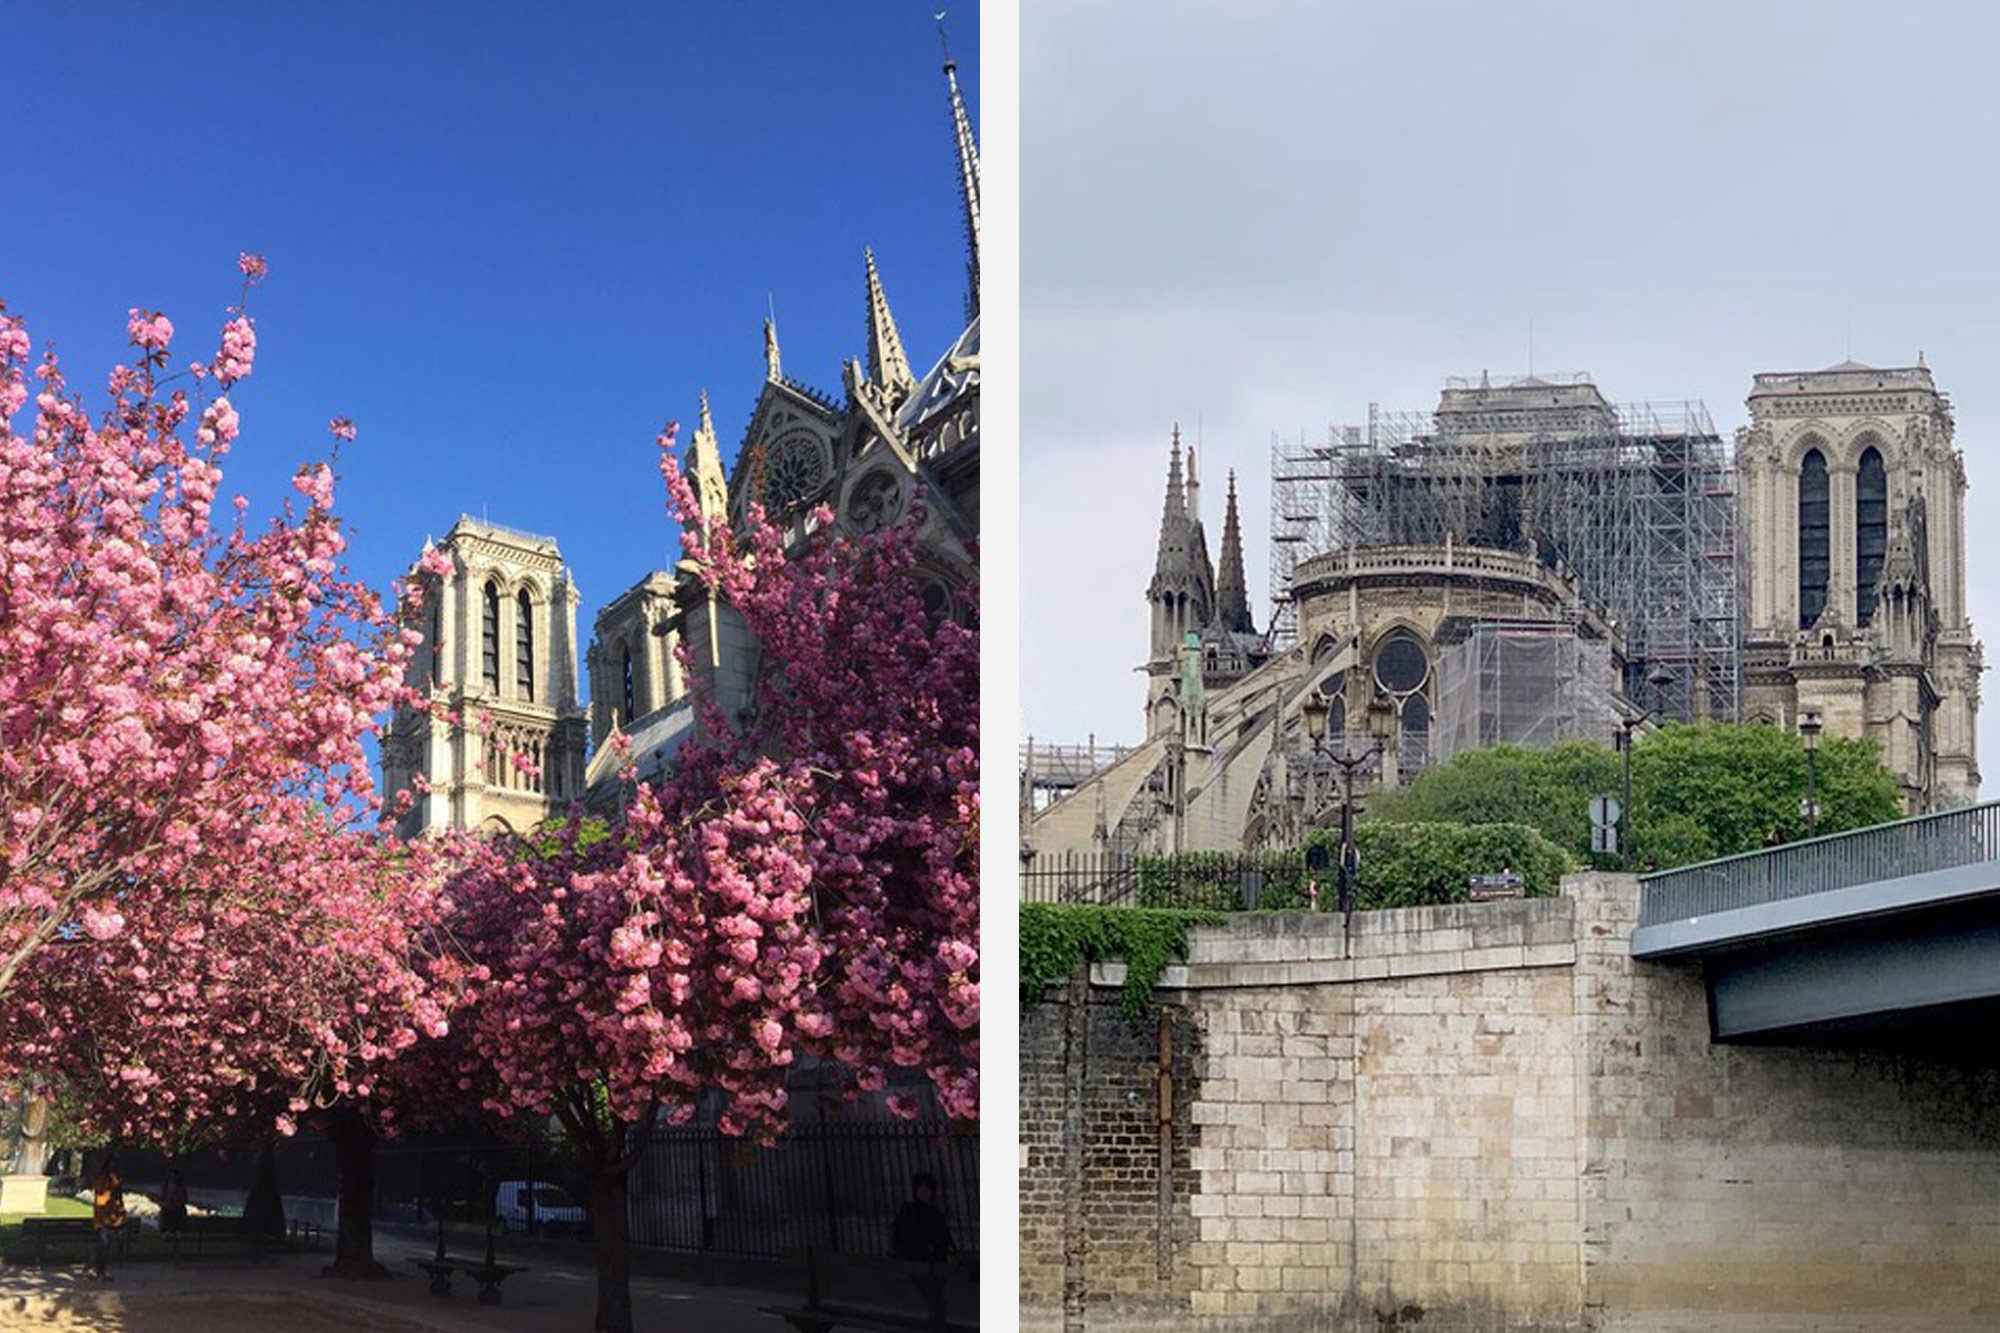 Notre Dame Cathedral in Paris, surrounded by flowering pink cherry blossom before the fire (left). Notre Dame after the terrible fire in Paris in April 2019 (right).